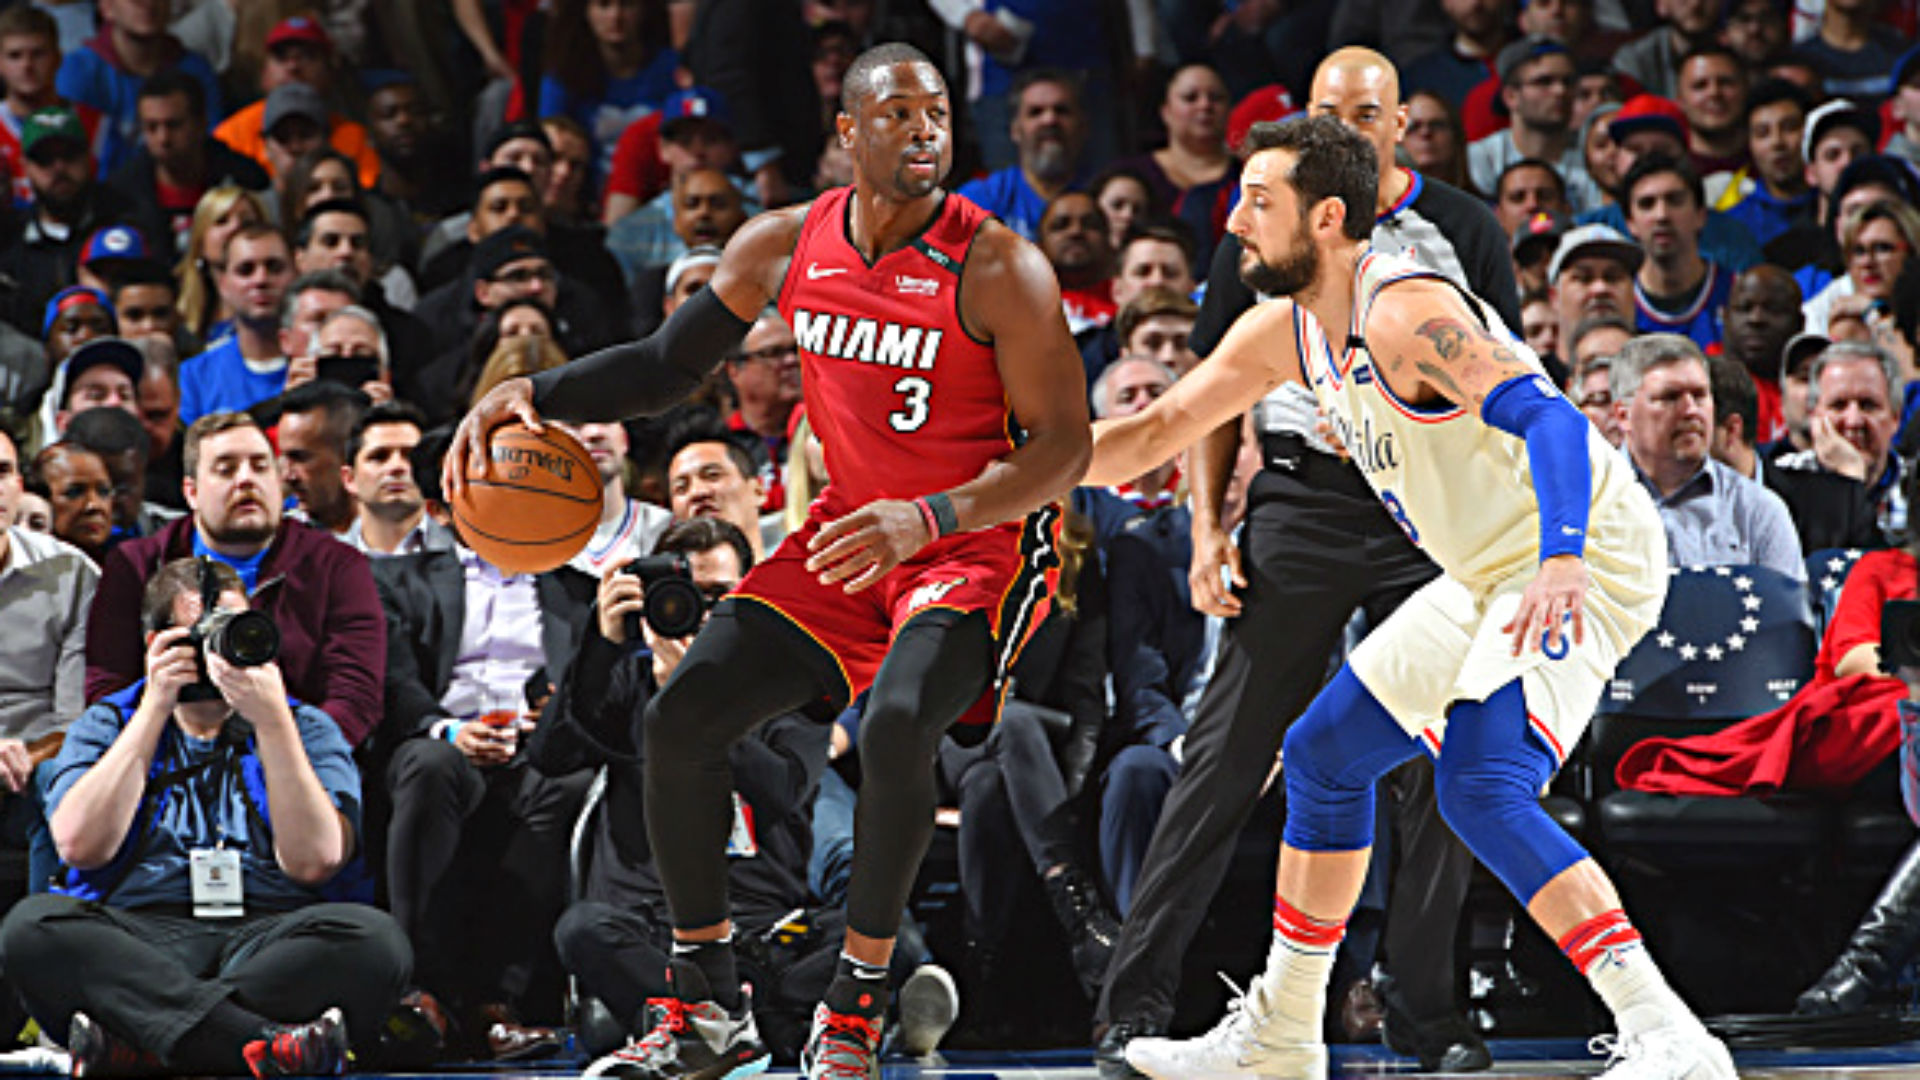 Sixers Lose To Heat As Joel Embiid Expresses Frustration